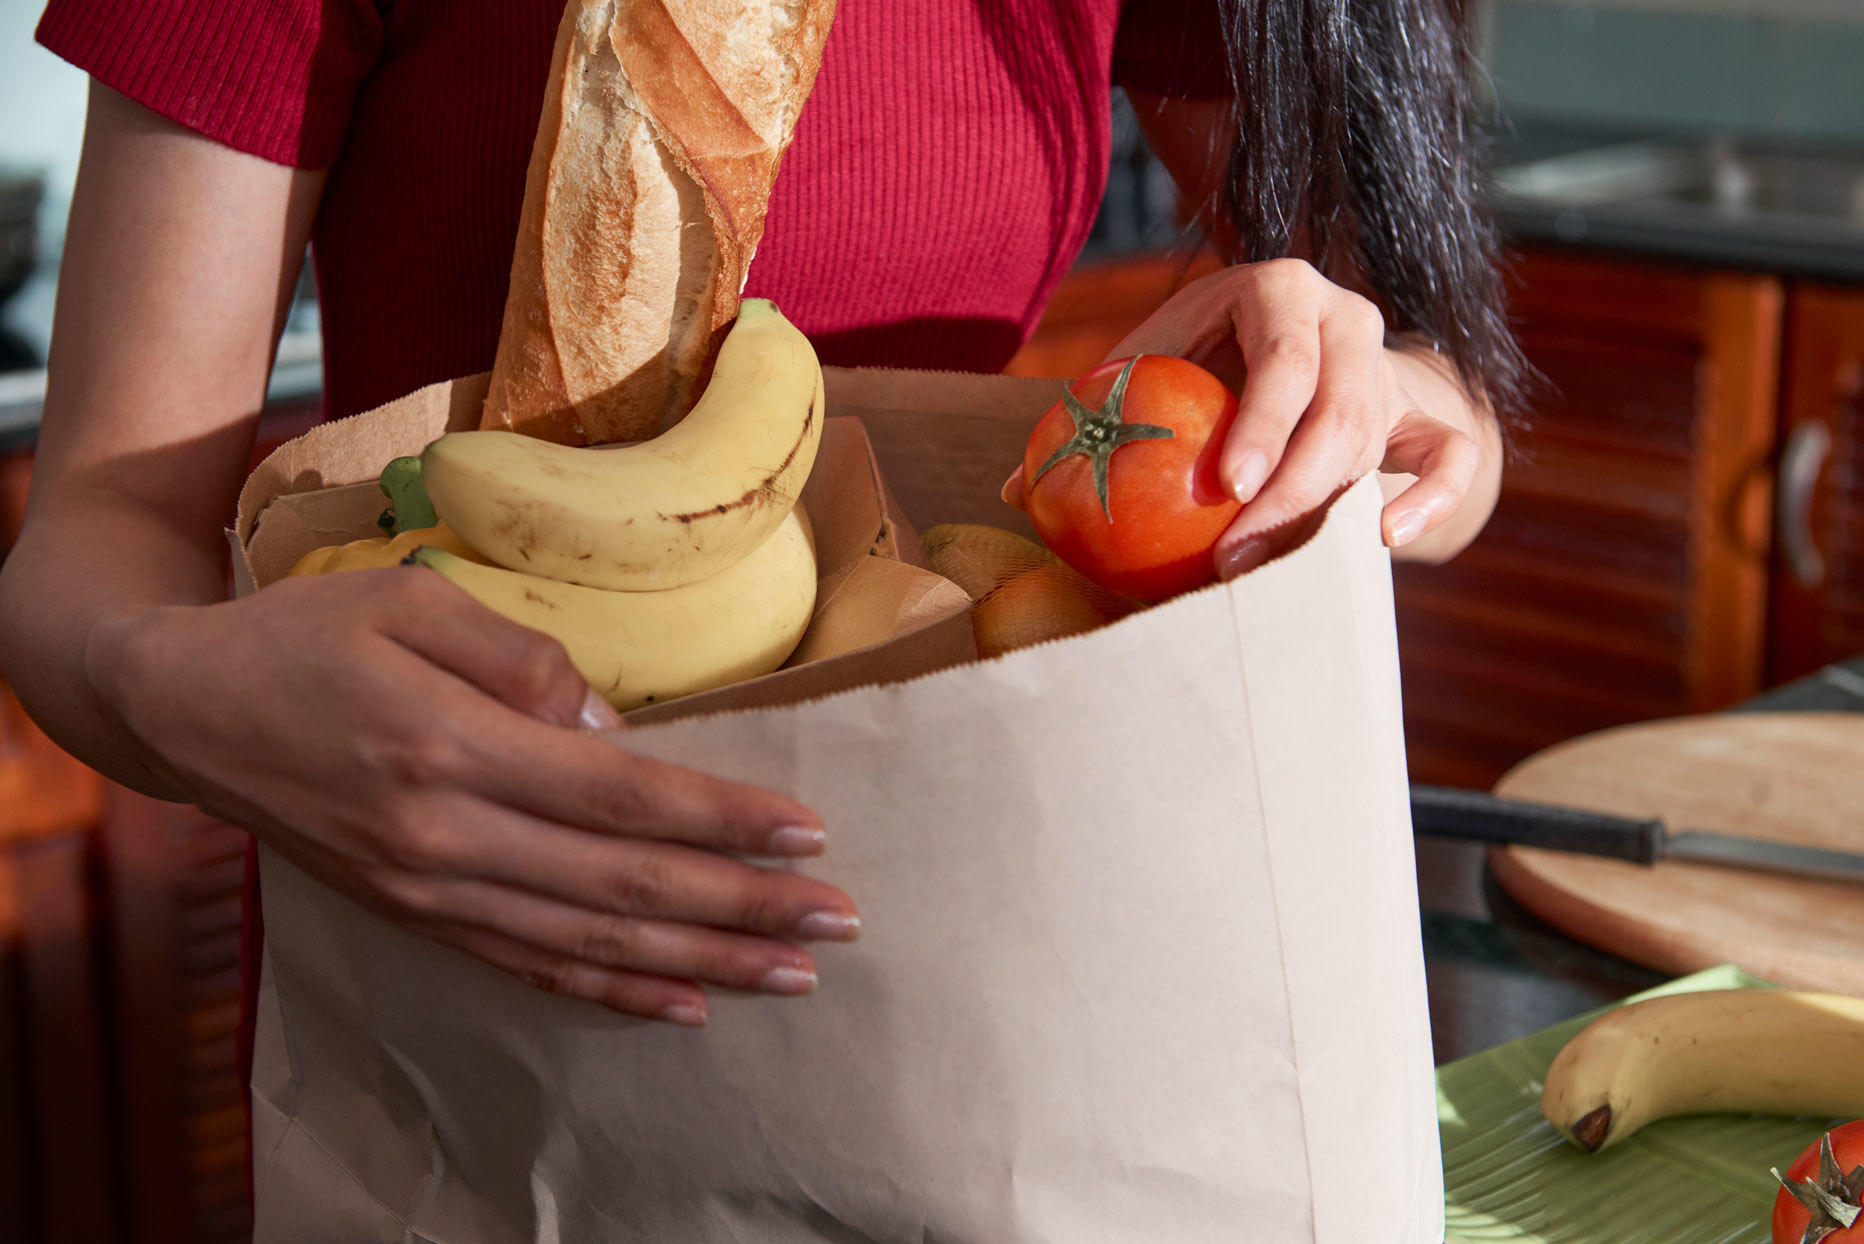 Woman unloading groceries from a paper bag